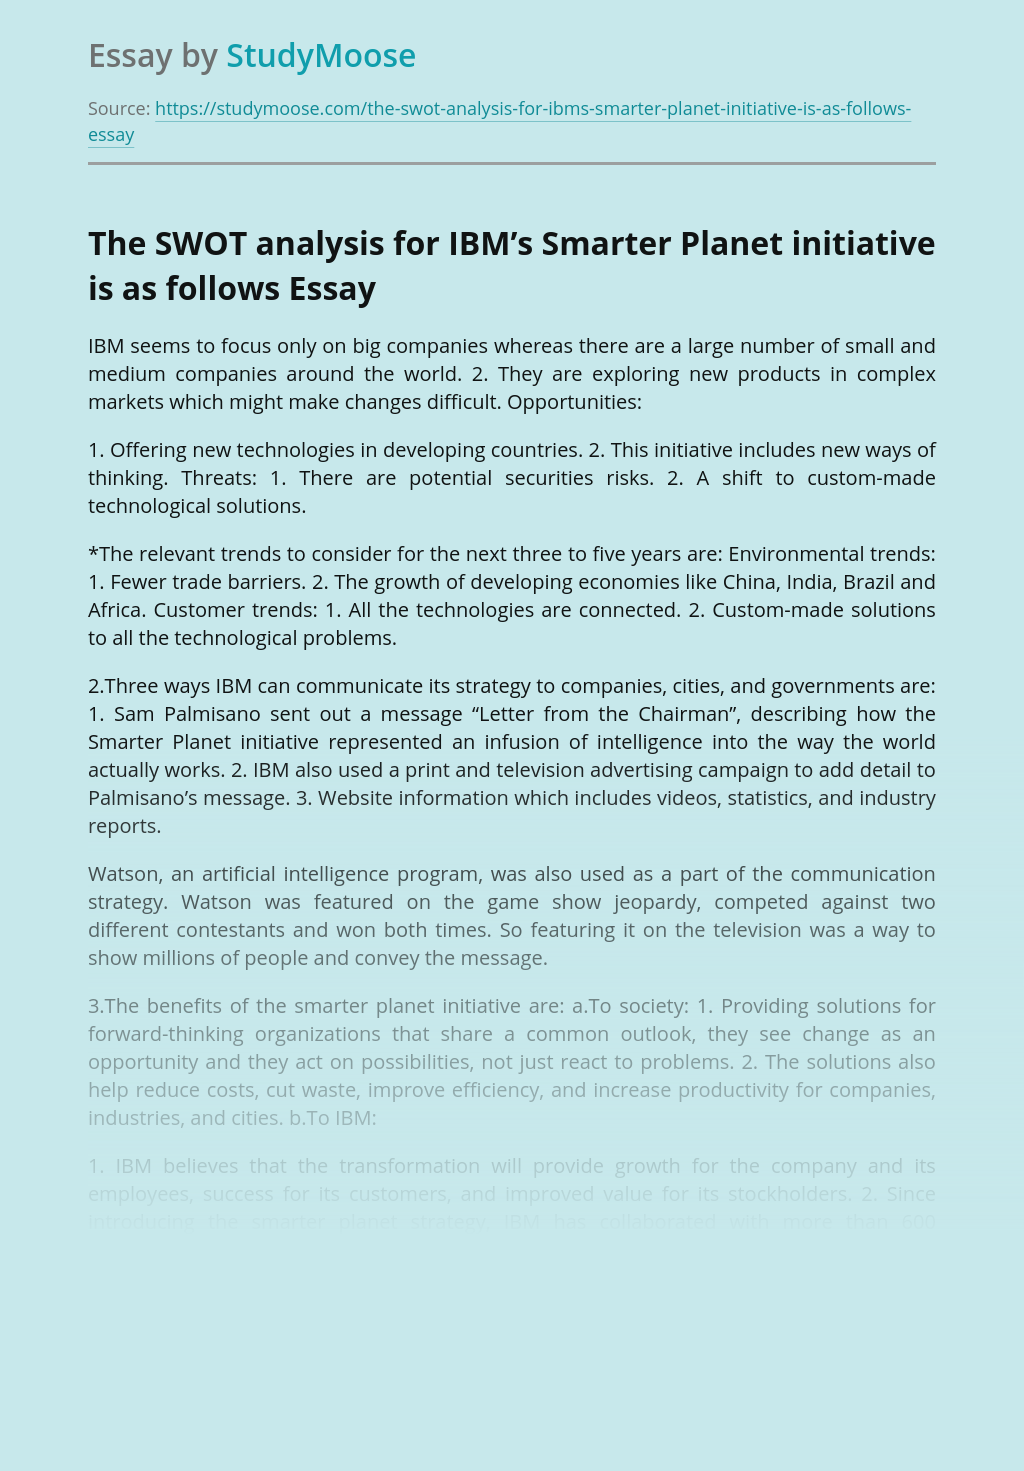 The SWOT analysis for IBM's Smarter Planet initiative is as follows